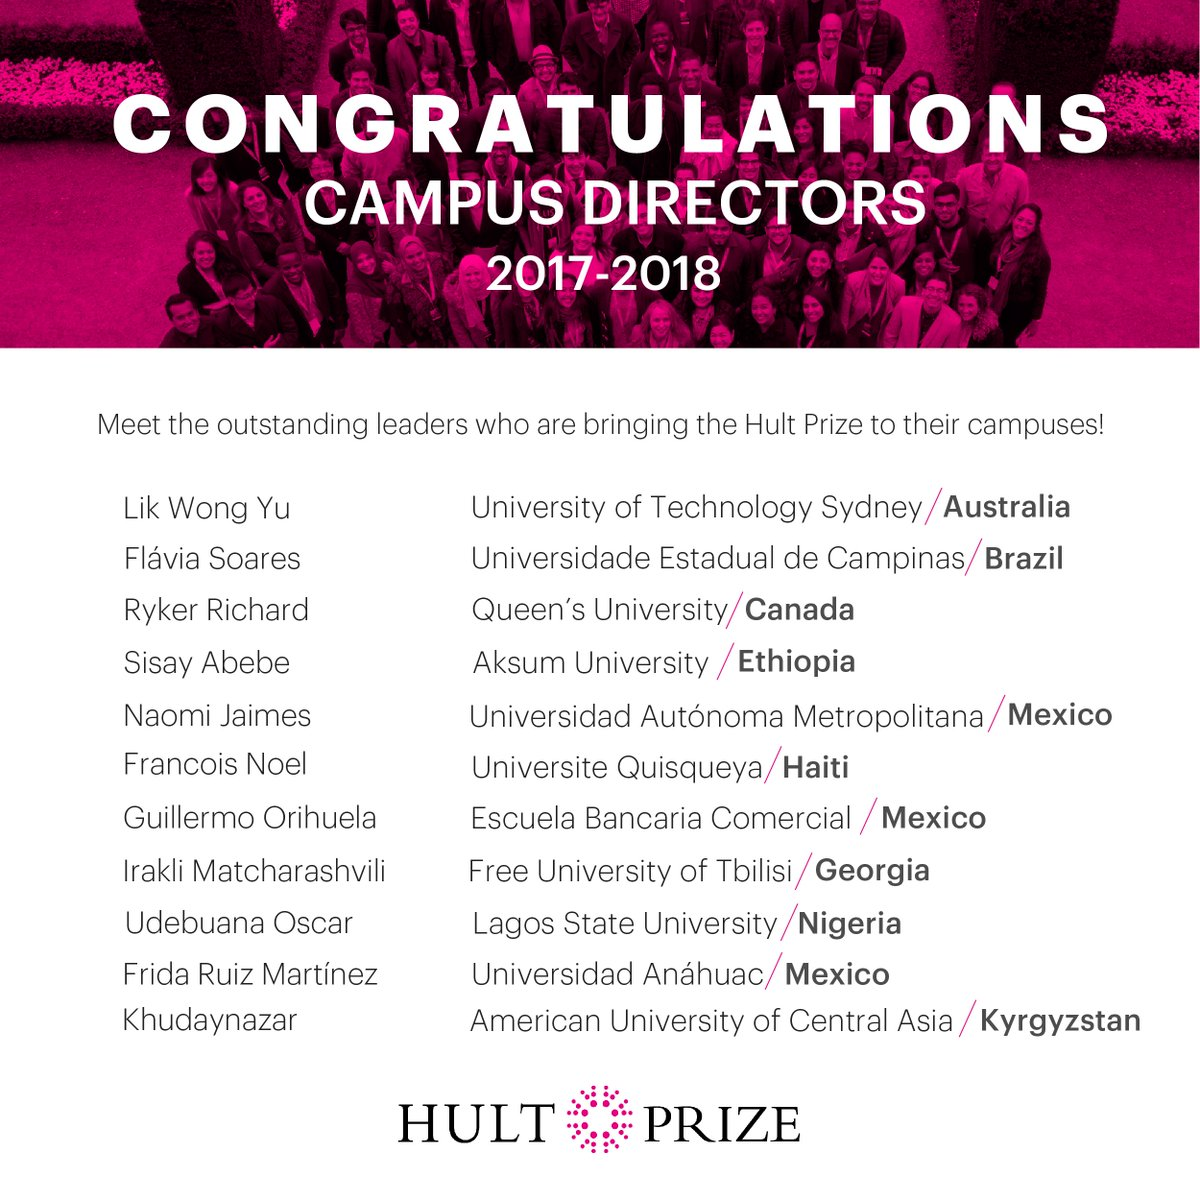 Hult Prize on Twitter: